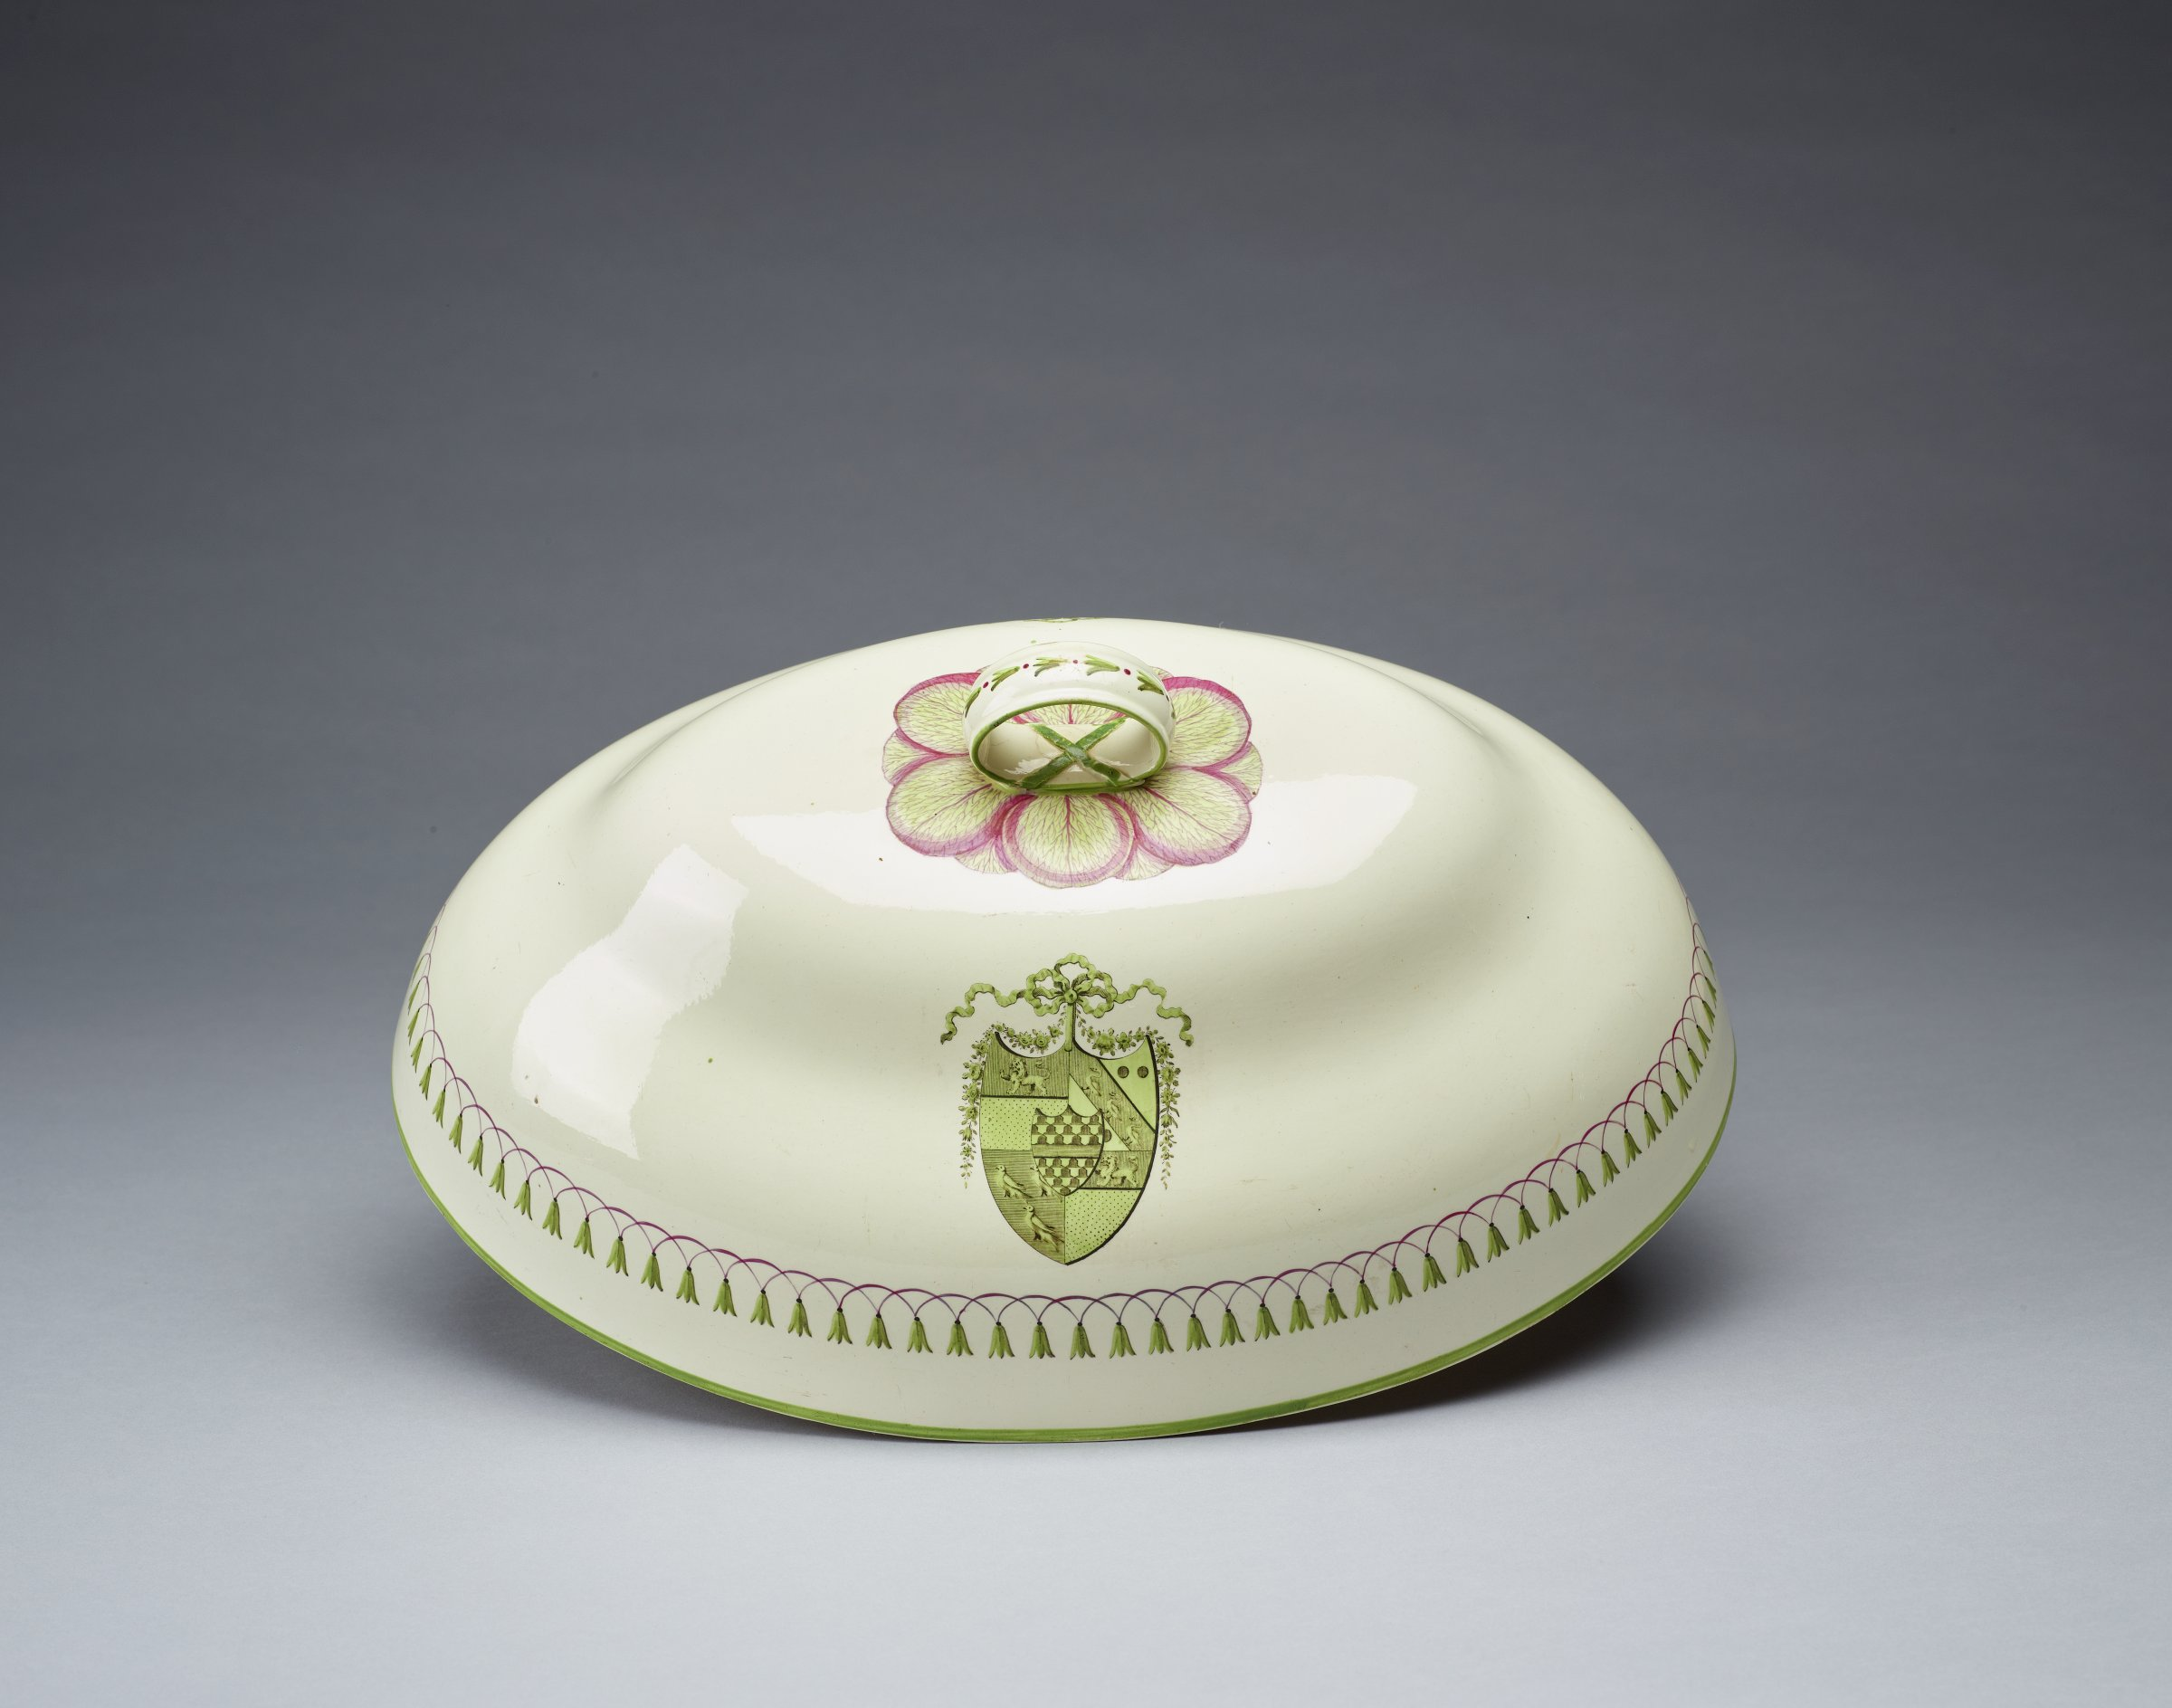 Large, oval, bell-shaped dish cover of creamware, painted in green enamel on both sides with the arms of Abney and Bracebridge (see notes) within a ribbon-tied garland, the lower rim is edged in green and the lower body has a band of dangling laurel leaves in green enamel suspended from pink stems, at the top a pattern of pink and green cabbage leaves surrounds the loop handle, which is edged in green and has a decorative X at the base.